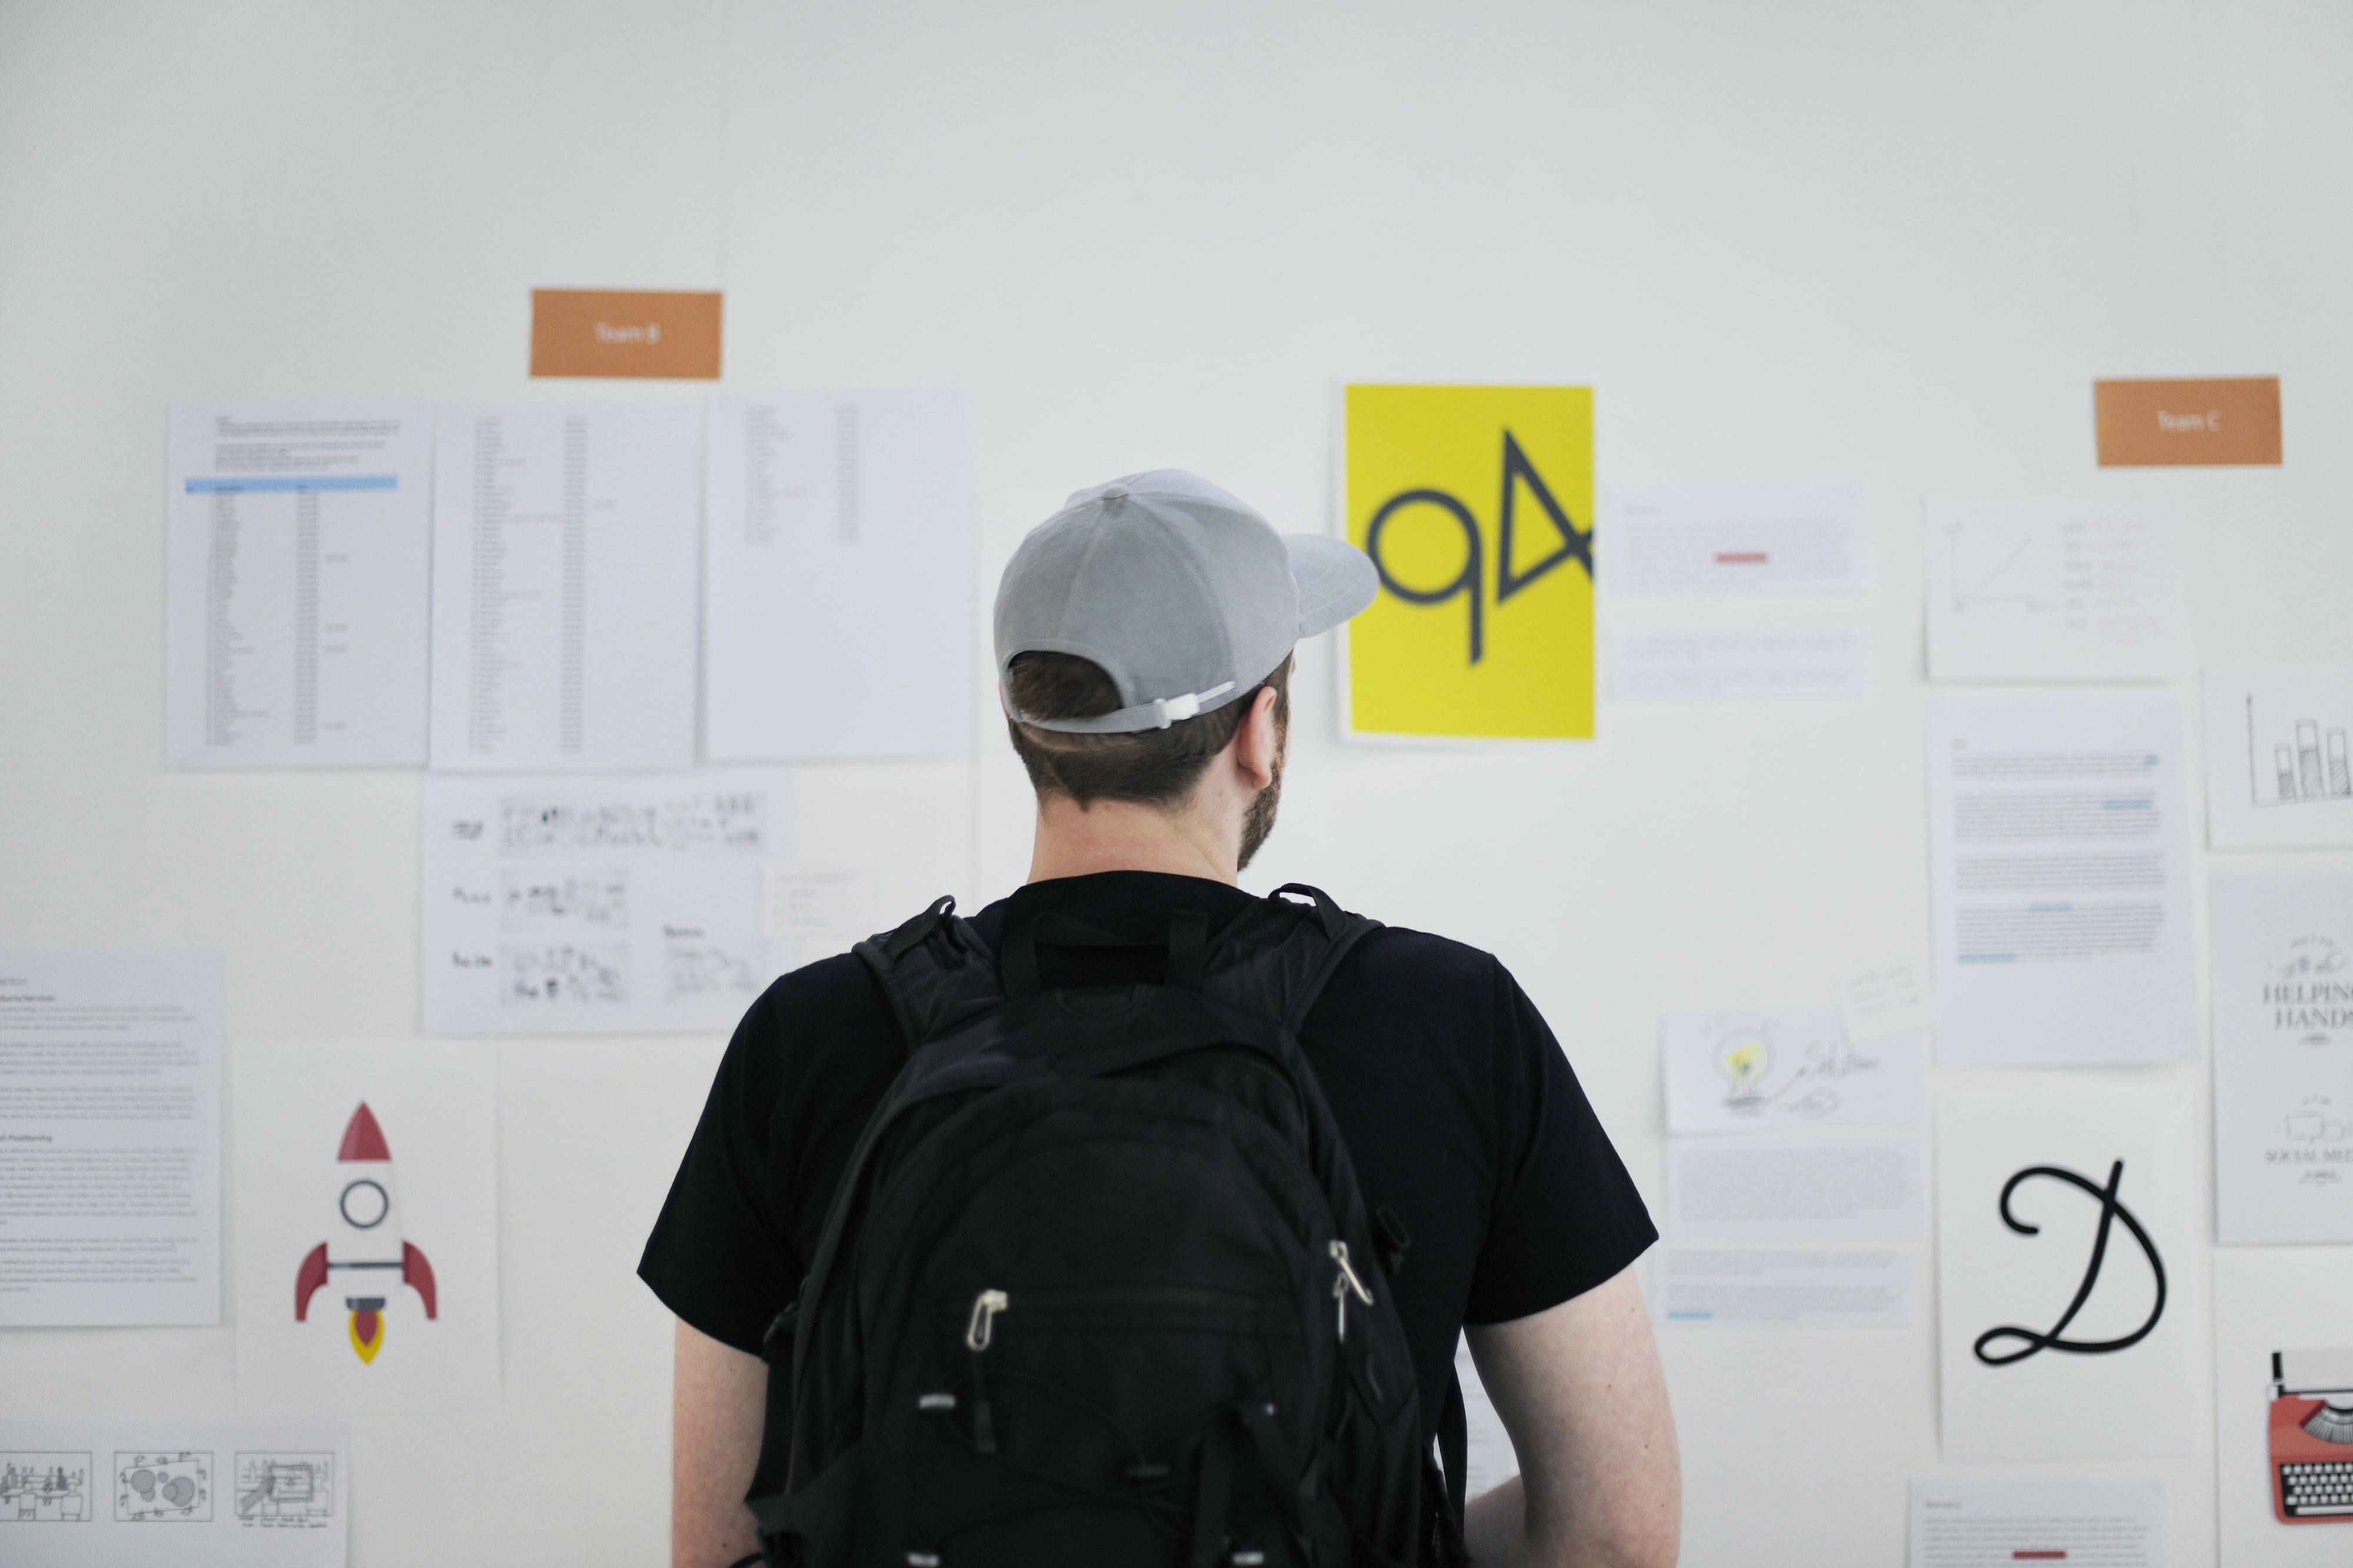 A man wearing a black backpack and baseball cap, staring at work related documents on the office wall